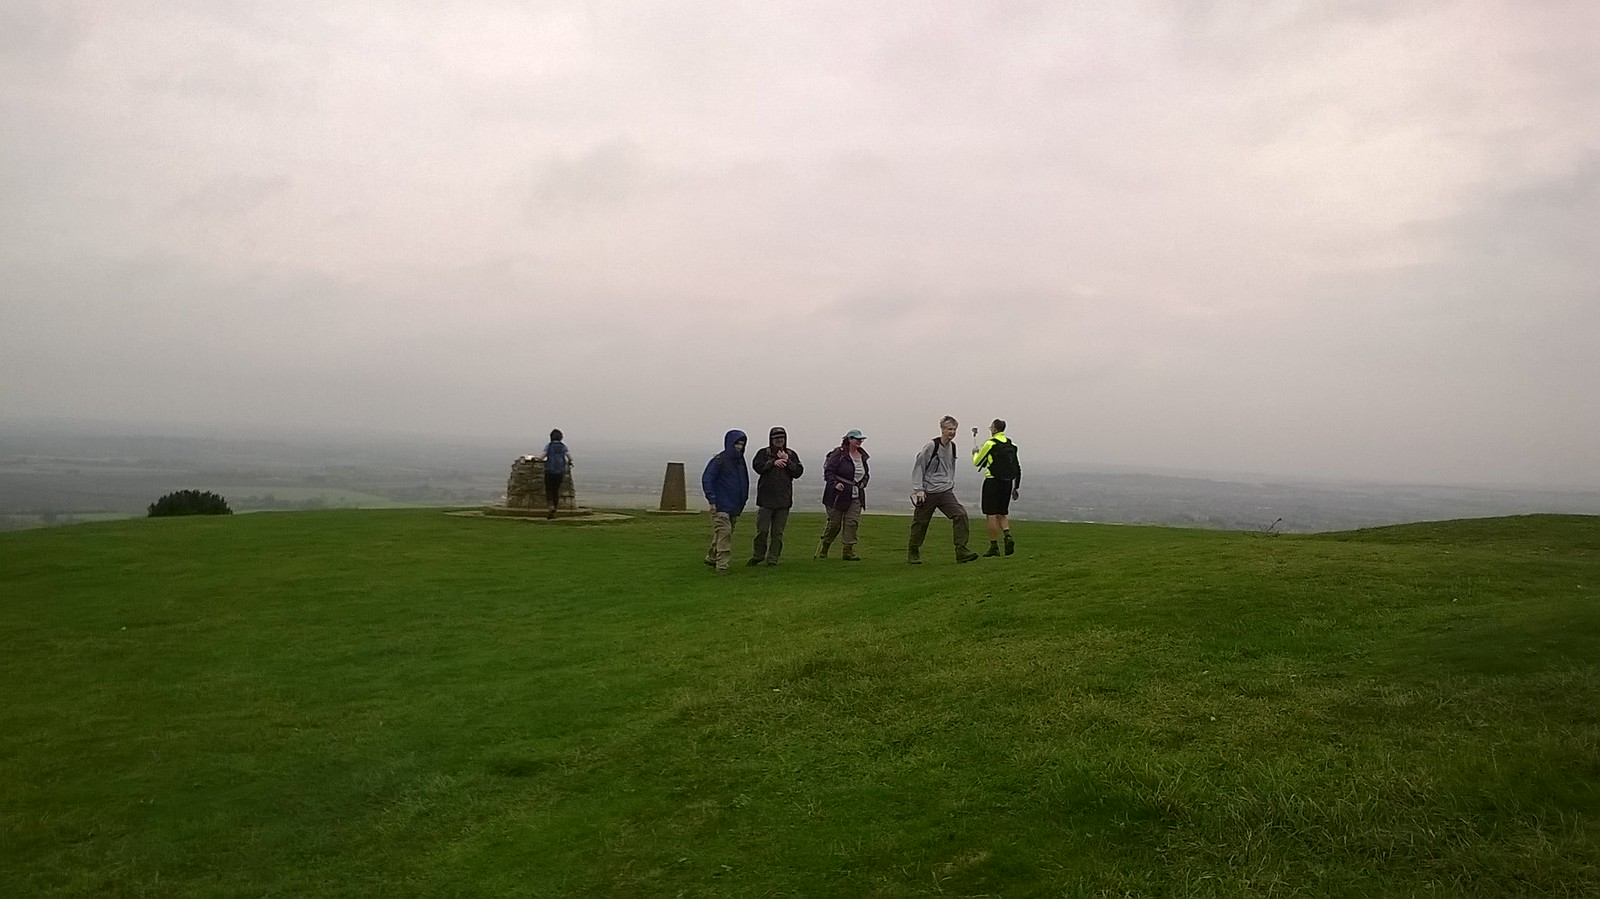 Ivenhoe Beacon Swc and other walkers at summit